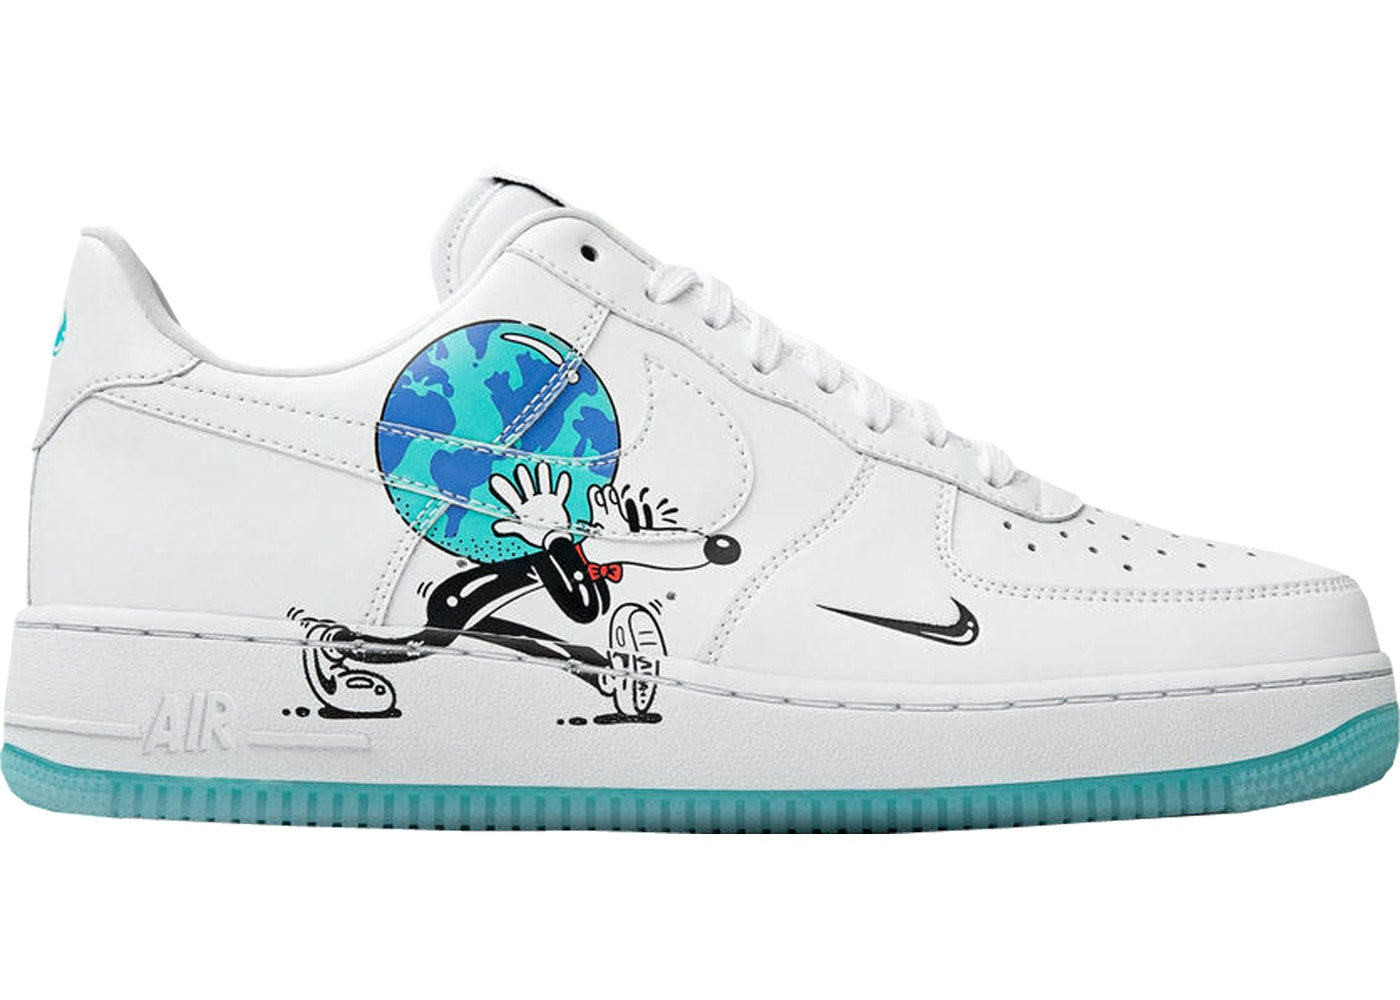 c19870d9 Air Force 1 Flyleather Steve Harrington Earth Day (2019) - CI5545-100